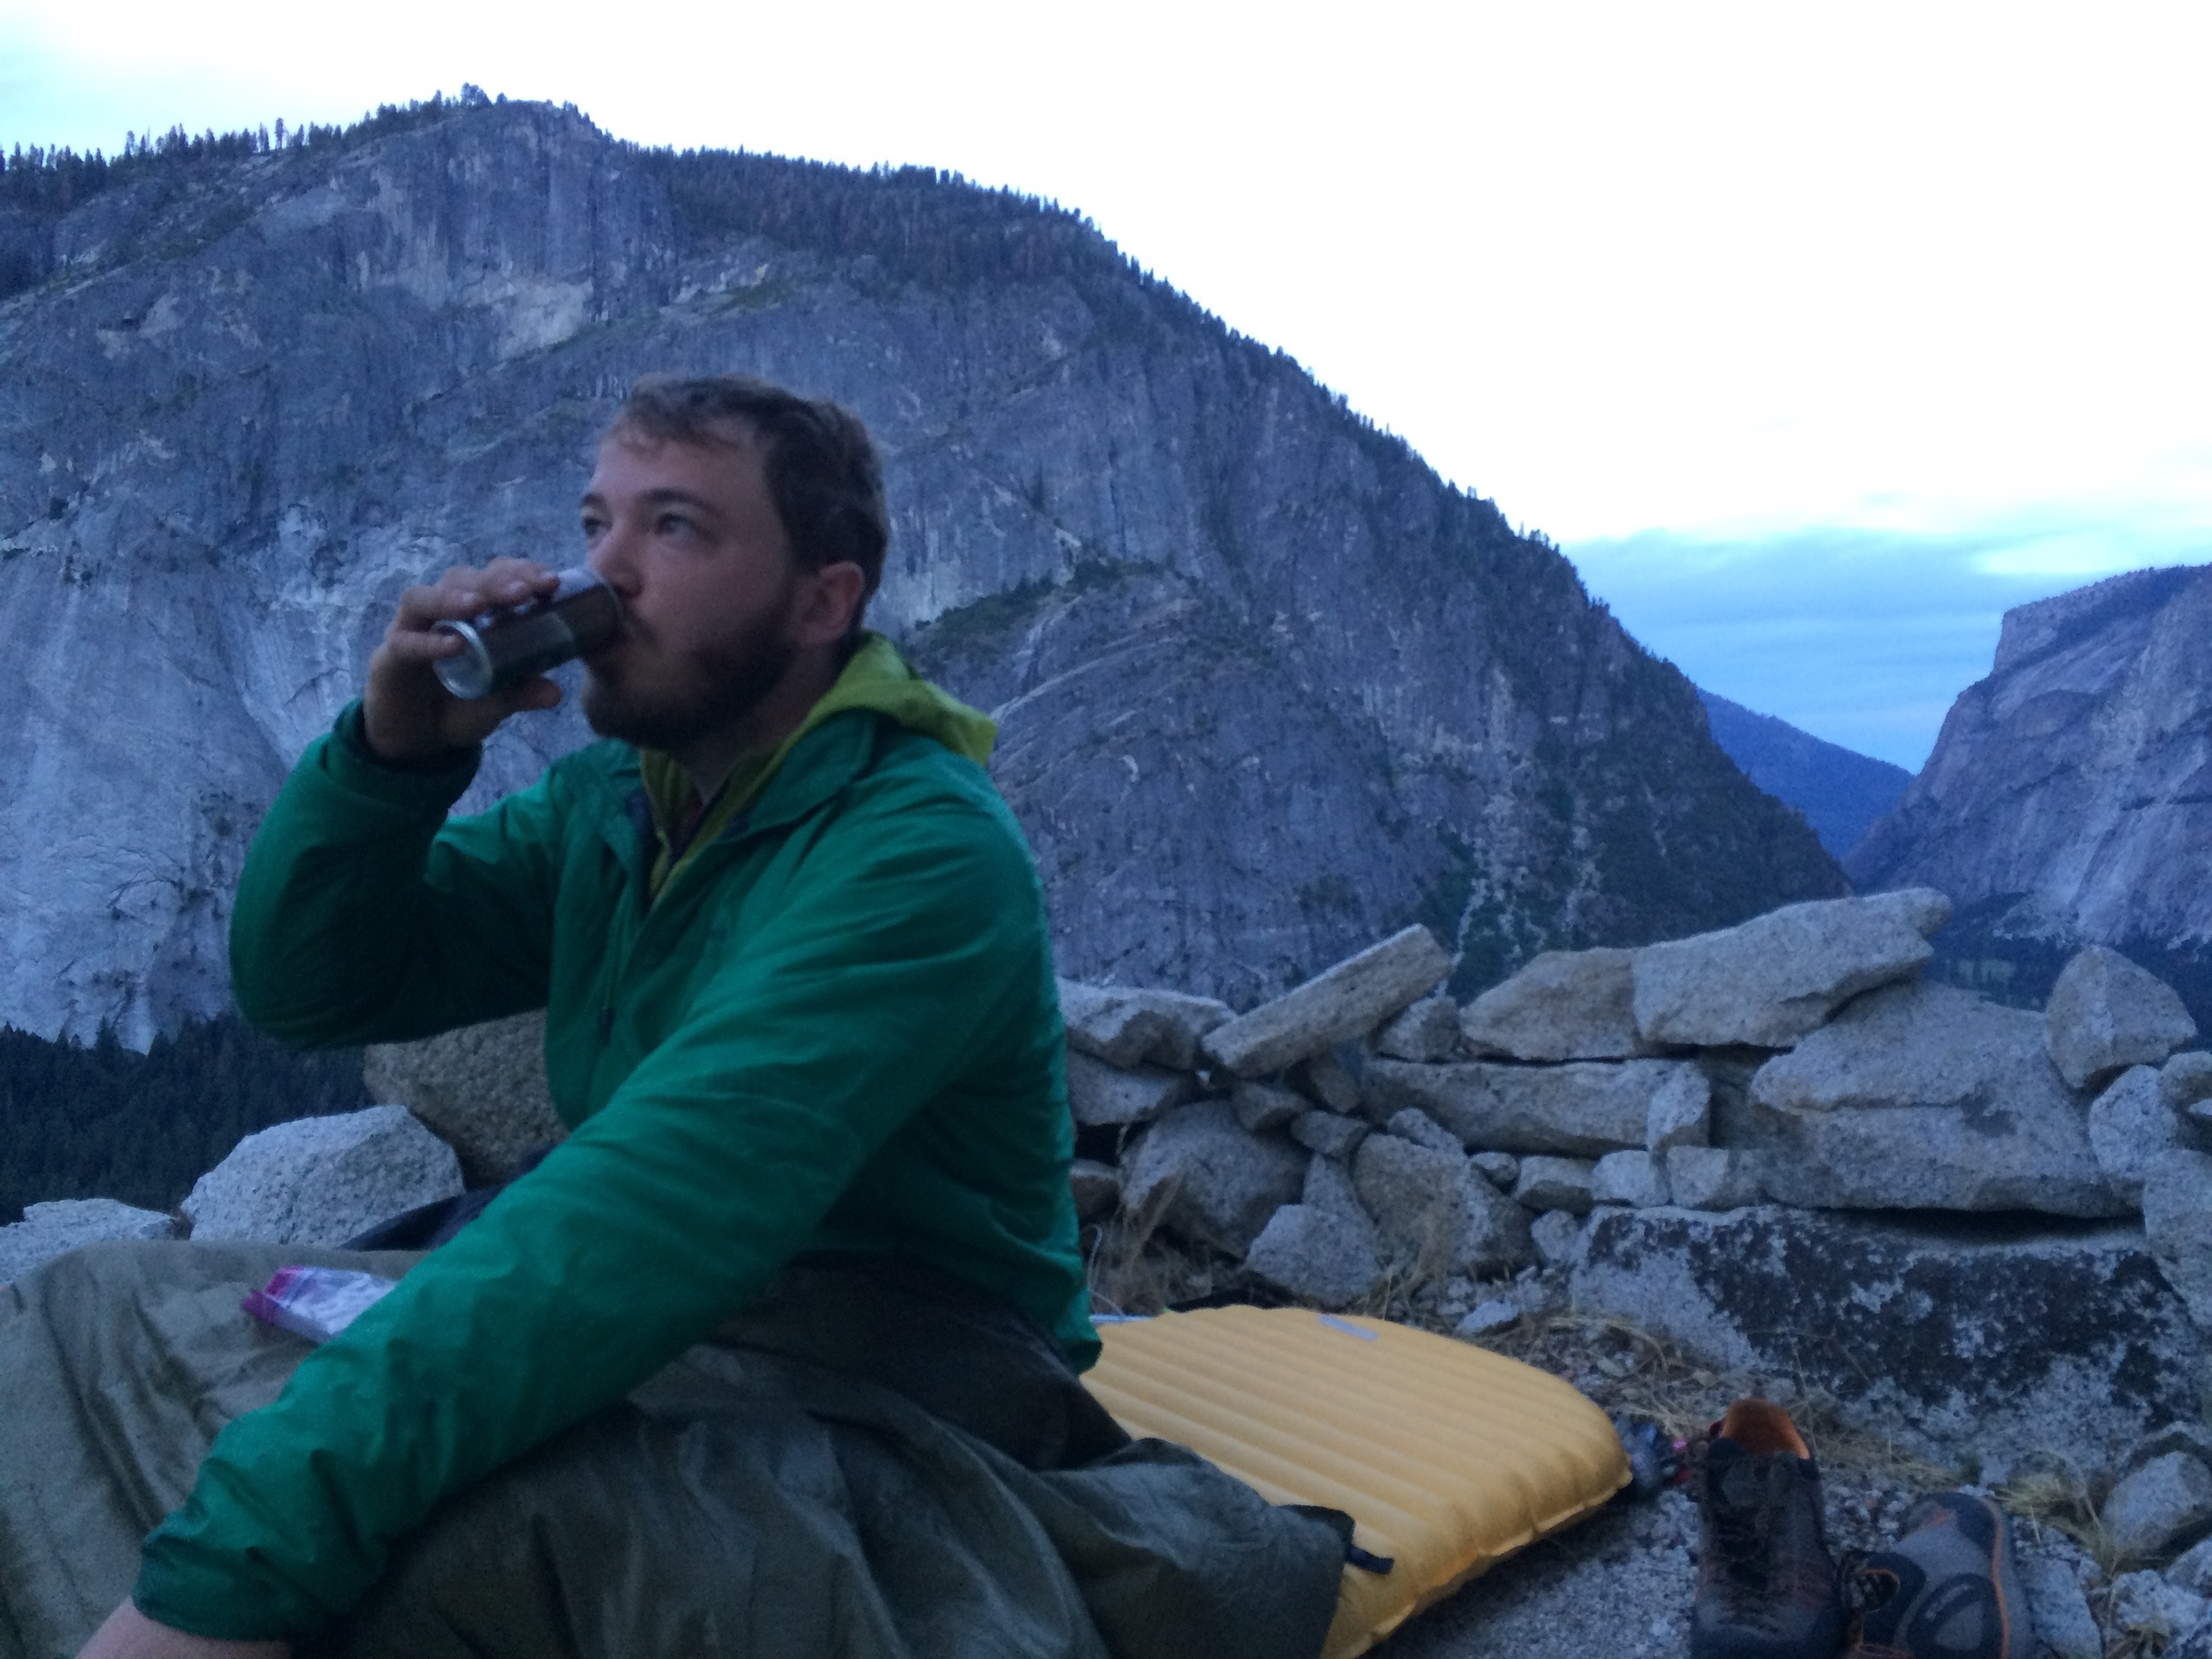 Waking up on day 2. One line to jug and 6 more pitches to the top!